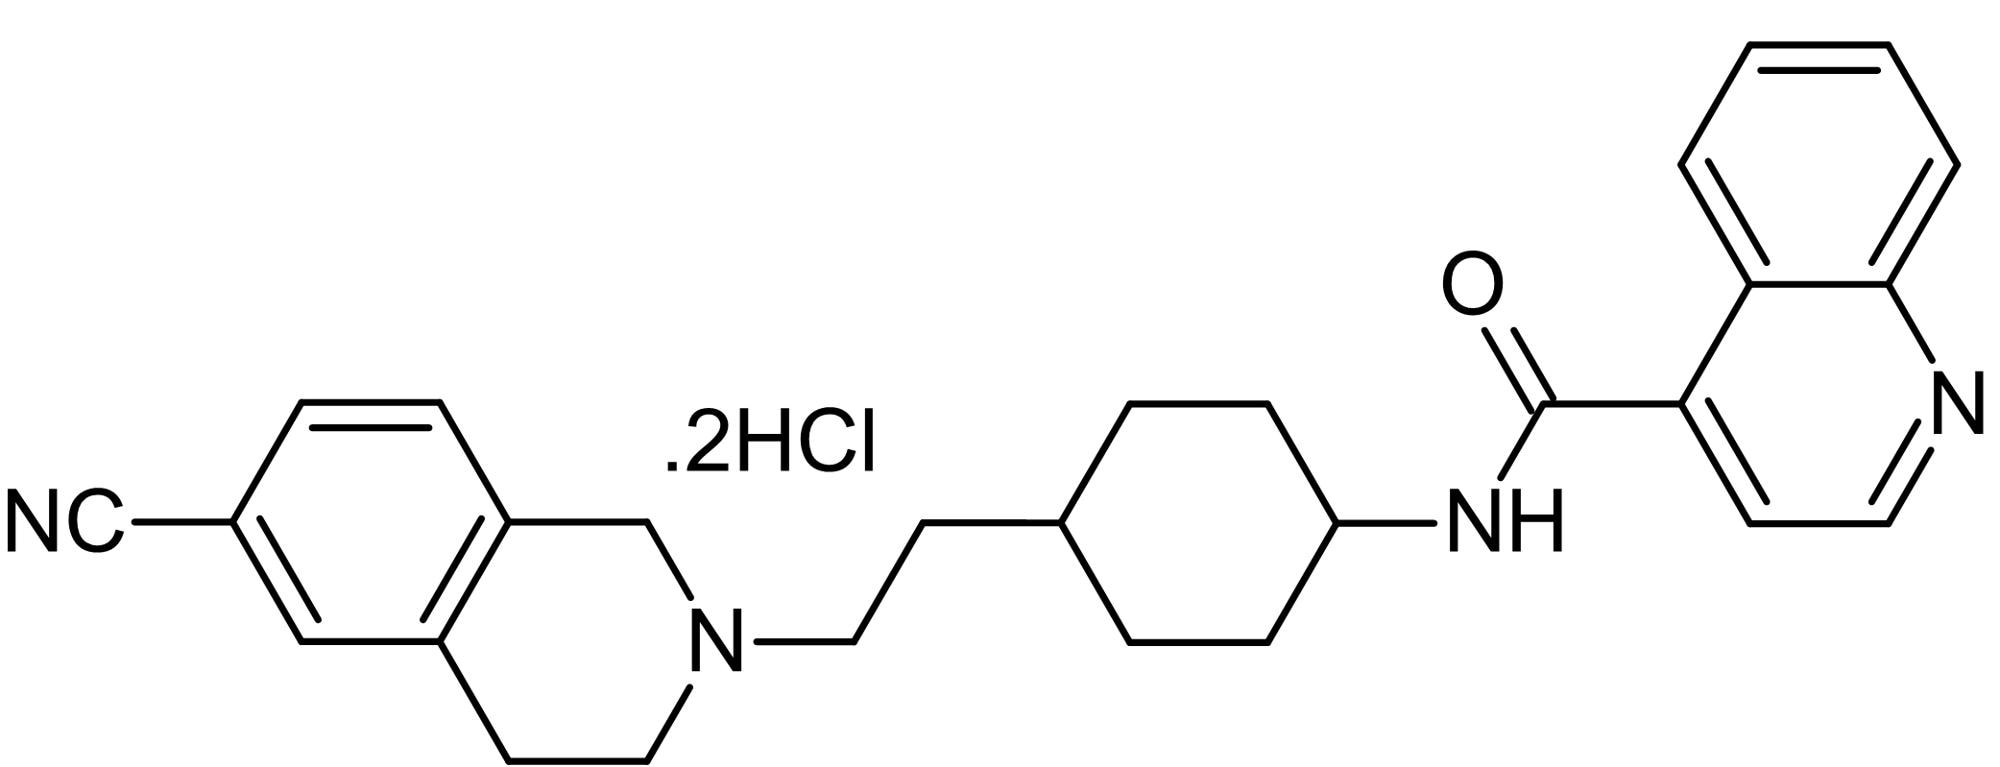 Chemical Structure - SB-277011-A dihydrochloride, D<sub>3</sub> antagonist (ab120567)